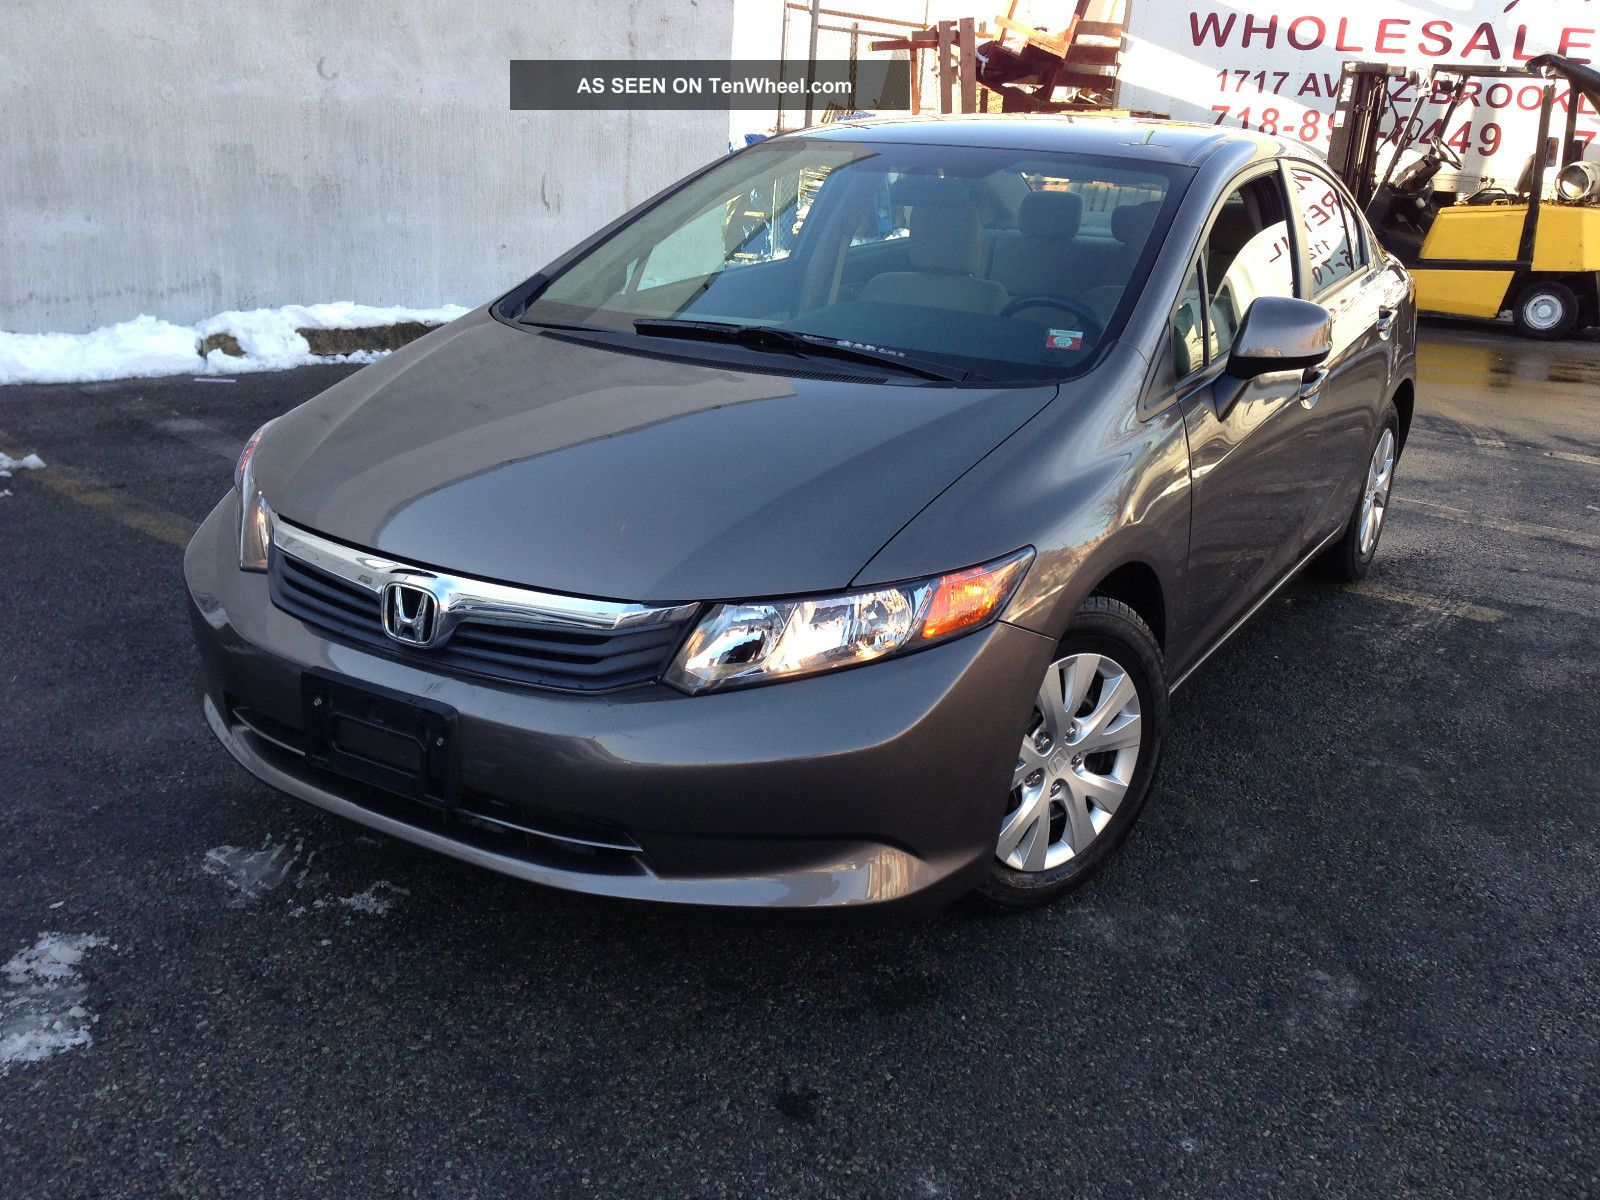 2012 honda civic lx sedan 4 door 1 8l sedan gas saver runs drives. Black Bedroom Furniture Sets. Home Design Ideas